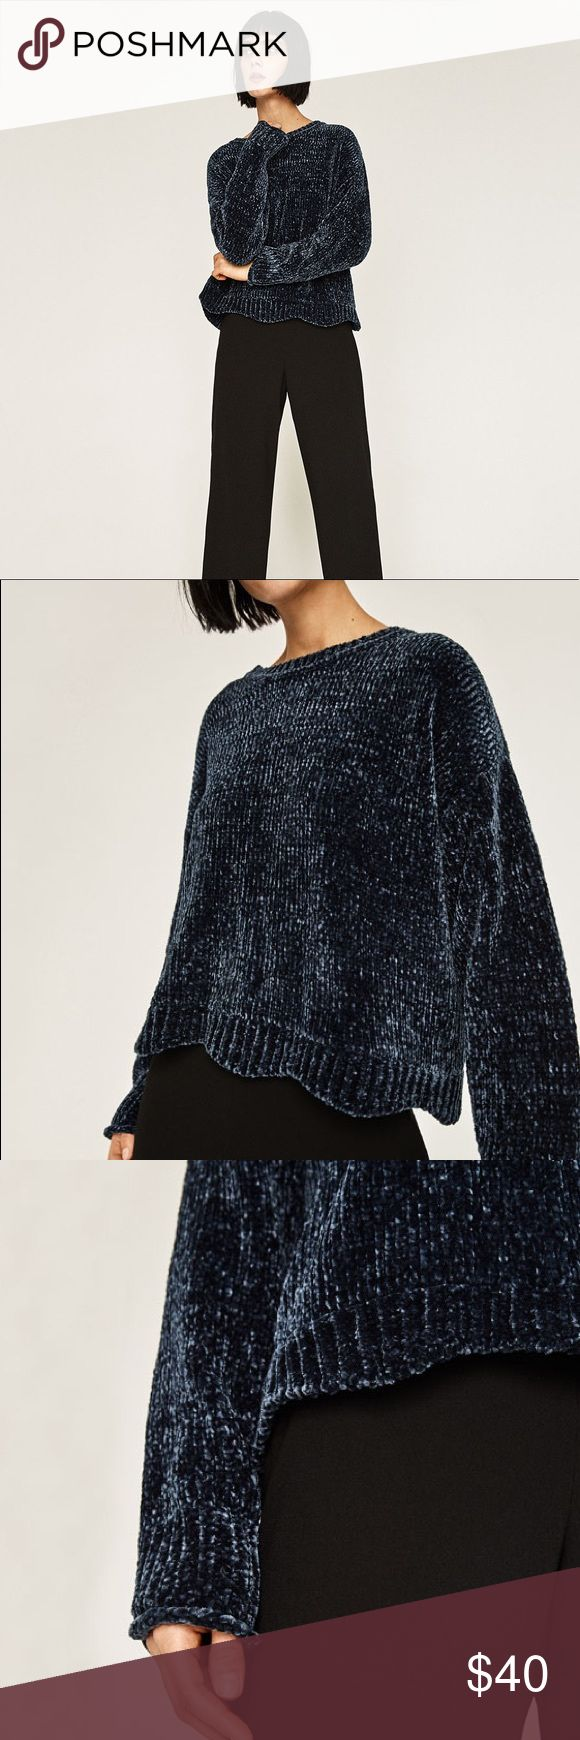 Flash sale!!👏🏼Zara extra soft navy blue sweater! This sweater is beautiful and probably the softest sweater i have felt. I have 2 of them so am giving this one a new home! They sold out online so if you missed a chance to buy this it's brand new with tags and I'll ship it in a Zara box! Thanks for looking! ❤️ Zara Sweaters Crew & Scoop Necks